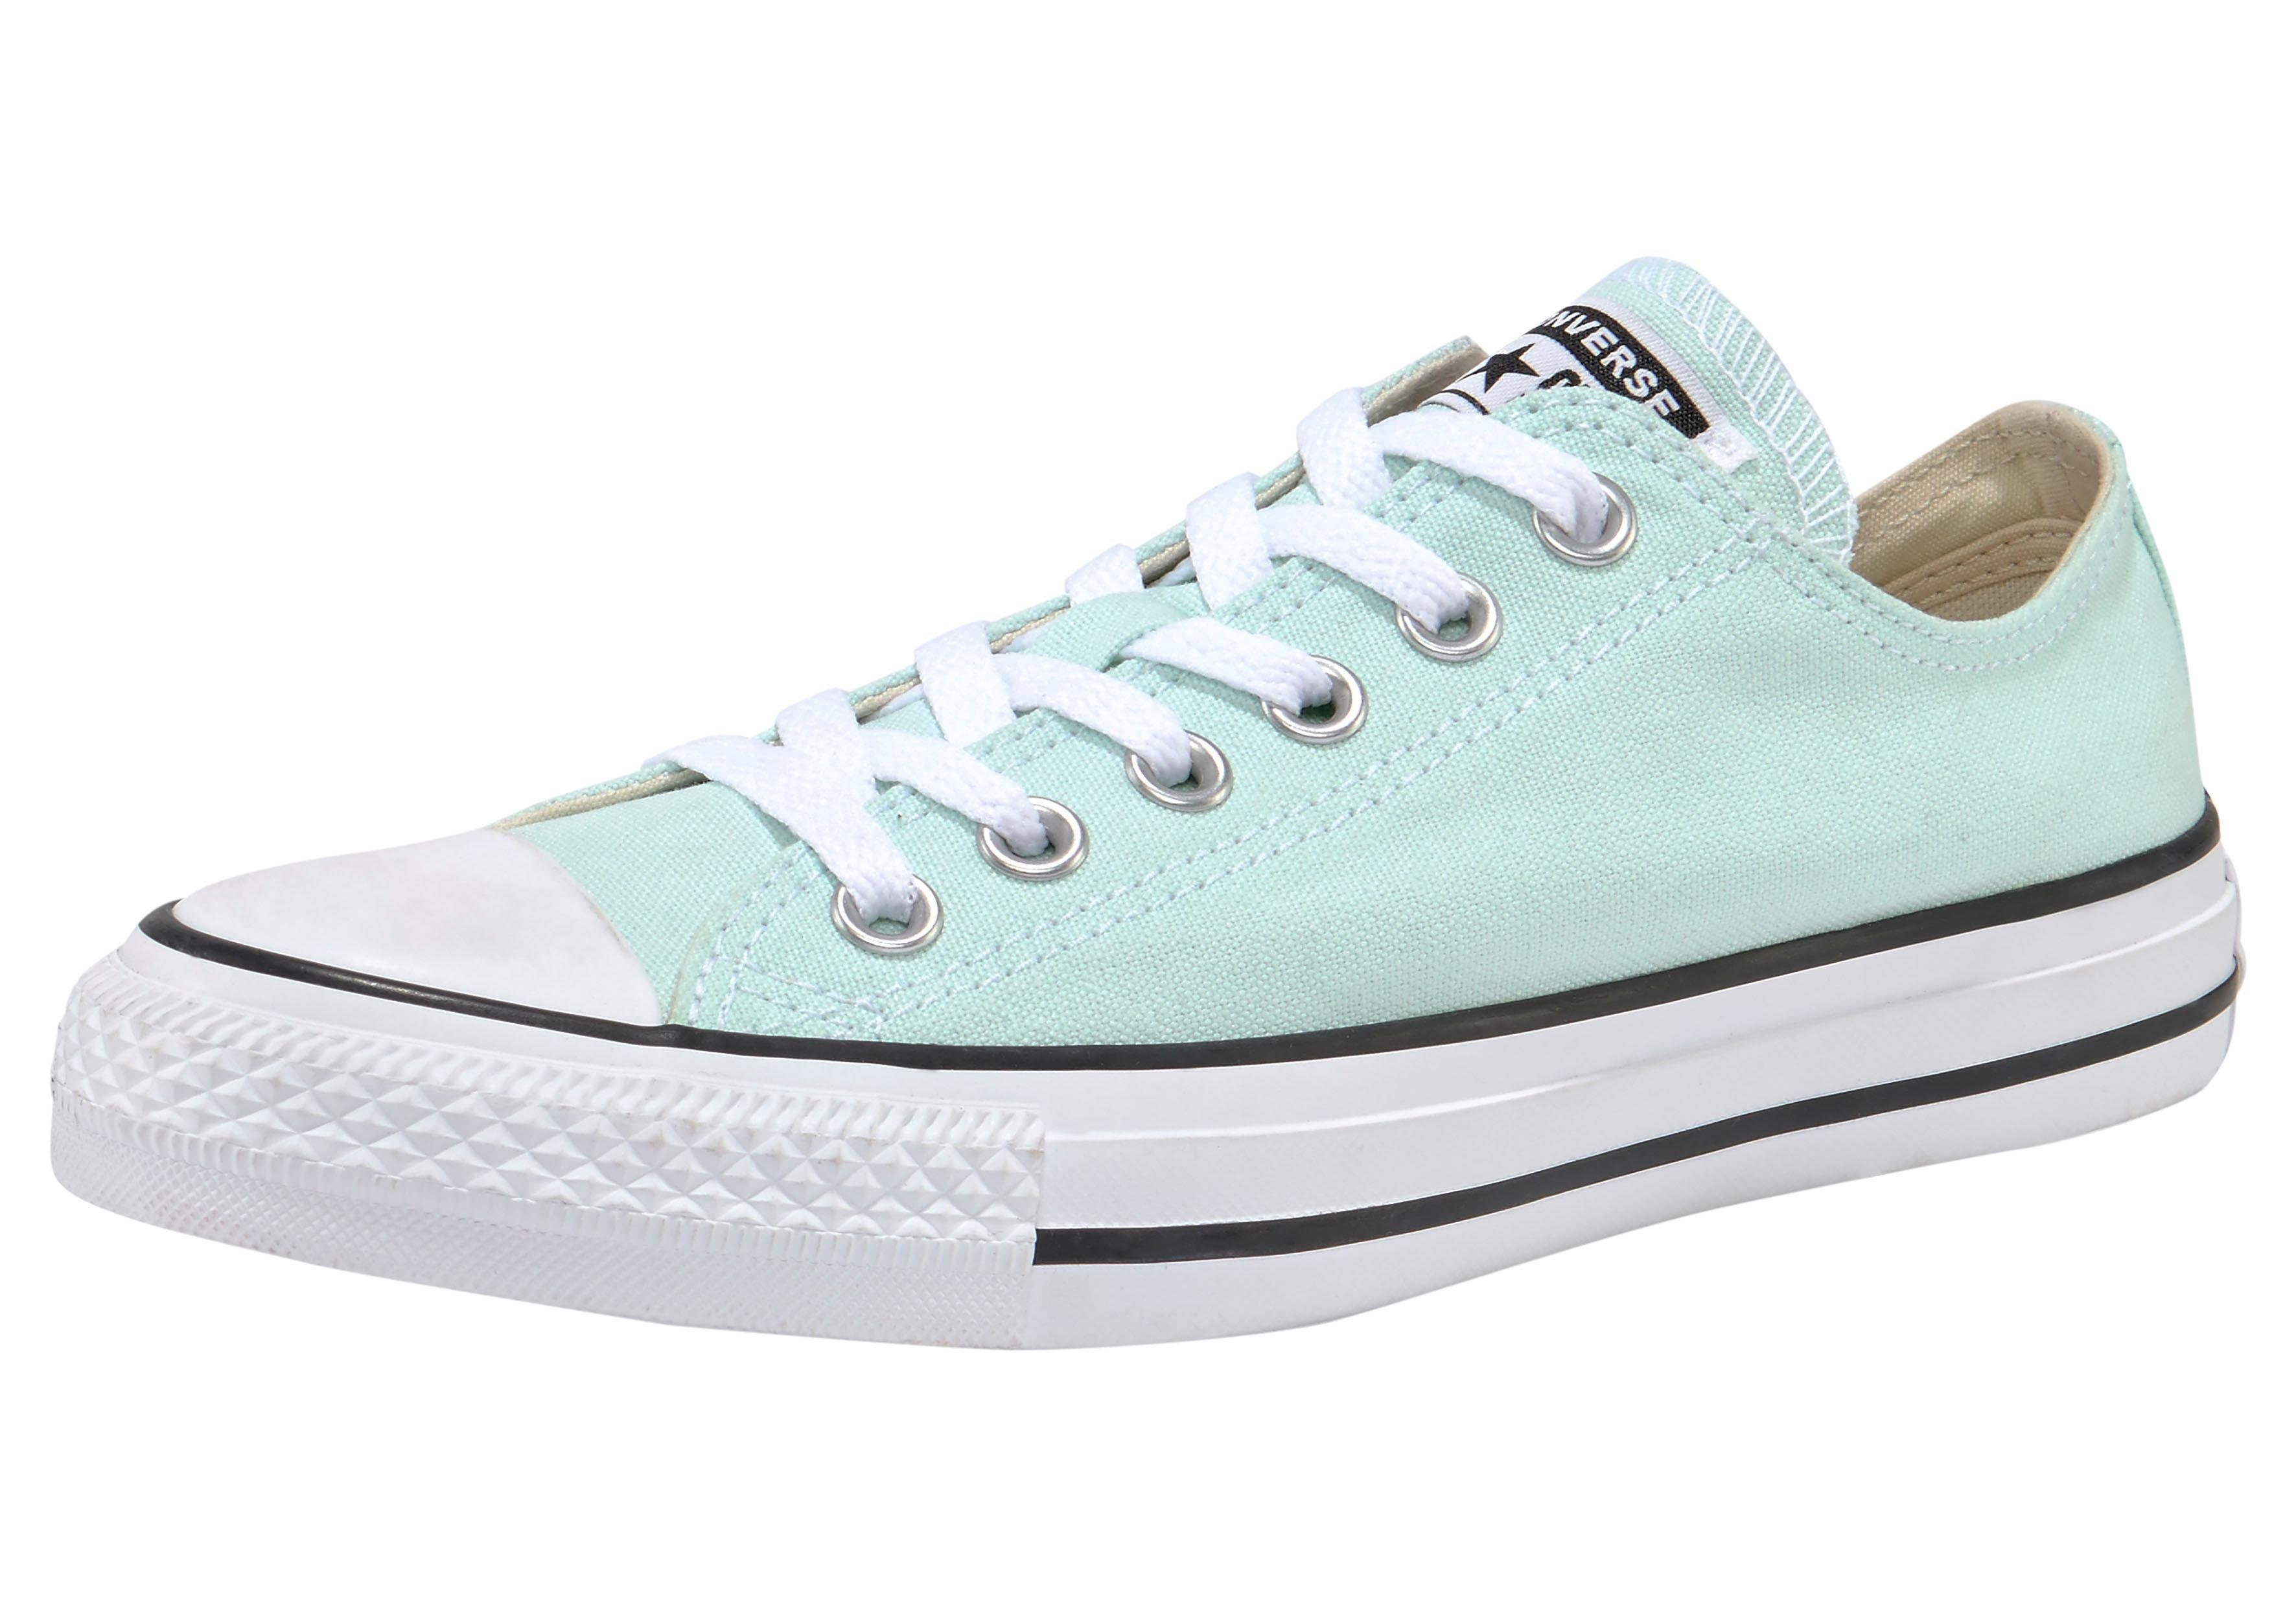 Converse »Chuck Taylor All Star Ox Seasonal« Sneaker online kaufen | OTTO